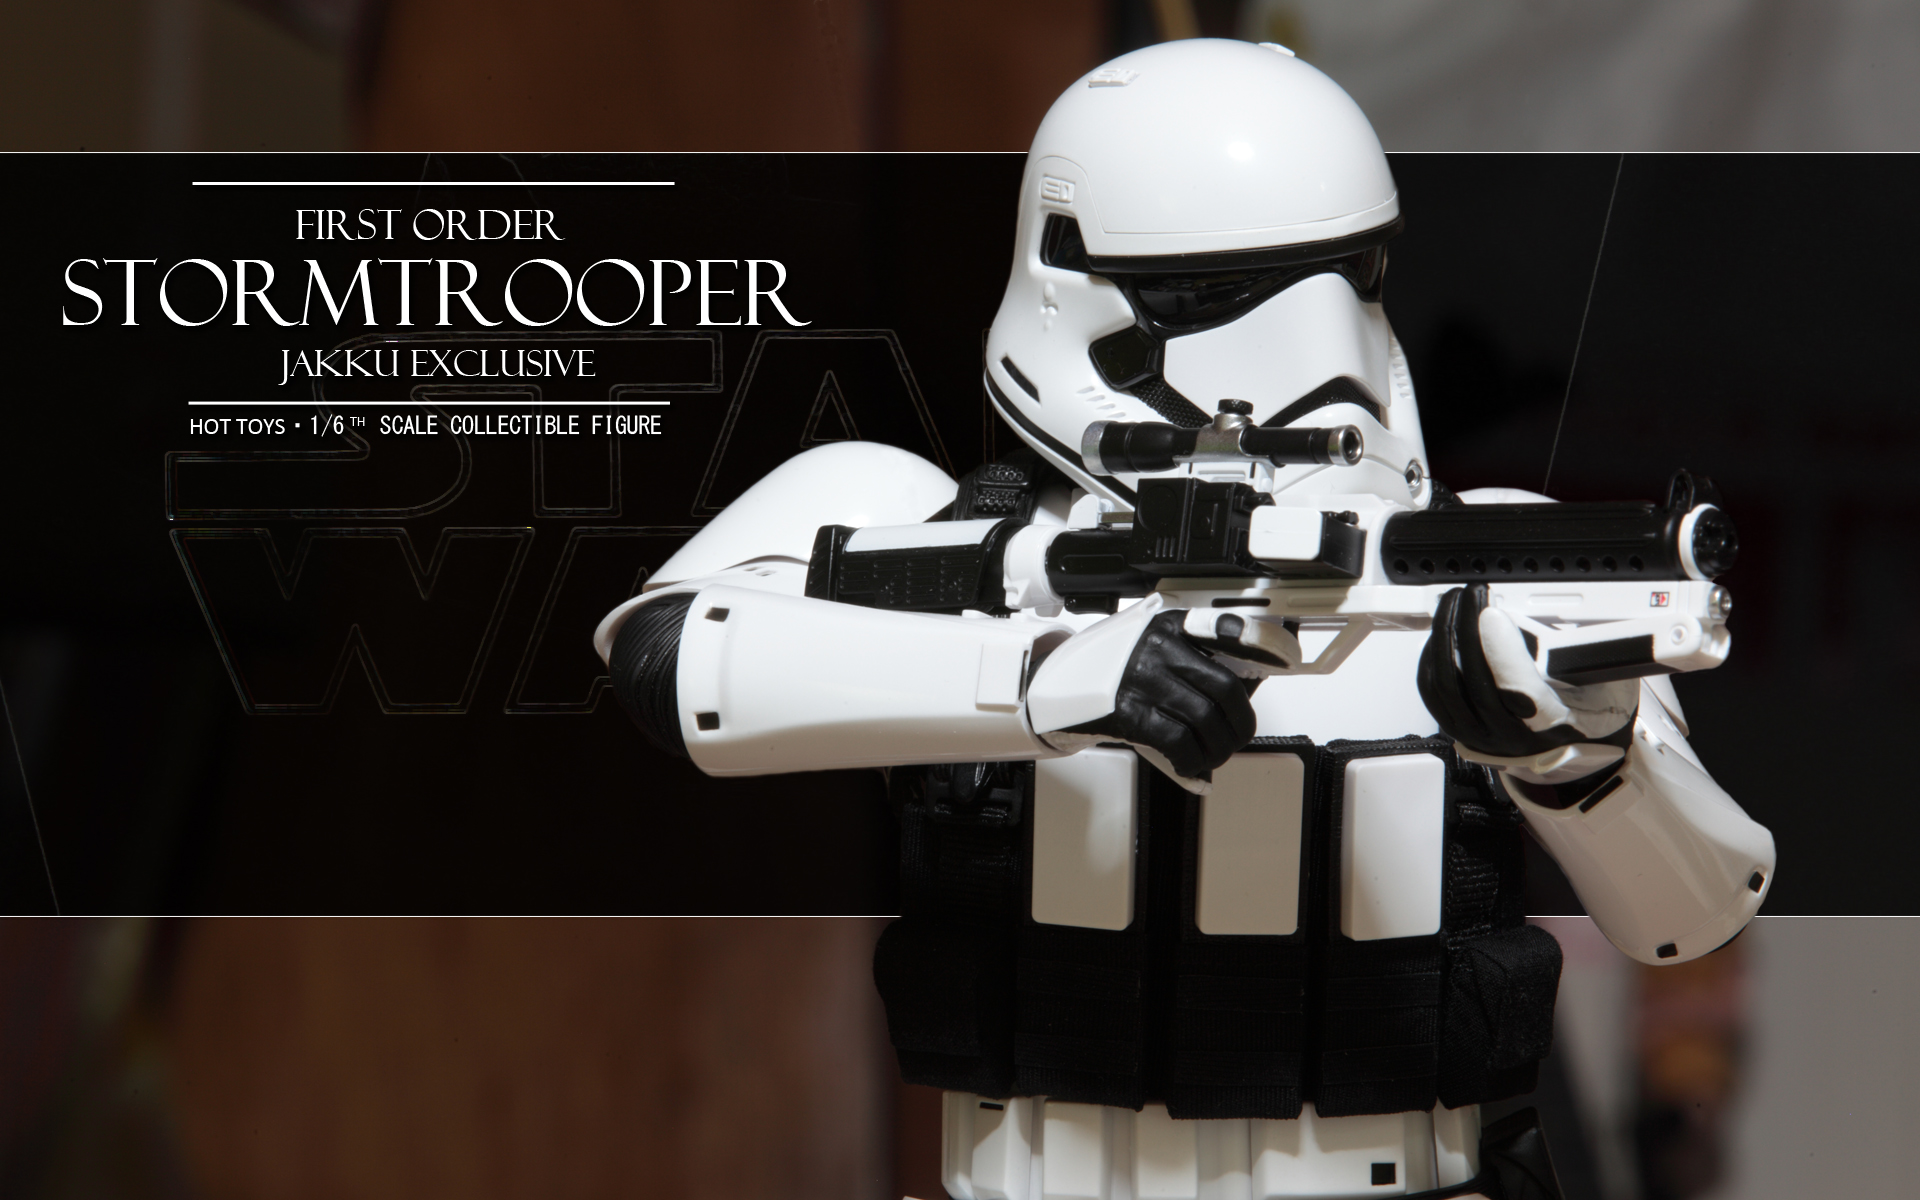 hottoys-star-wars-the-force-awakens-first-order-stormtrooper-jakku-picture03